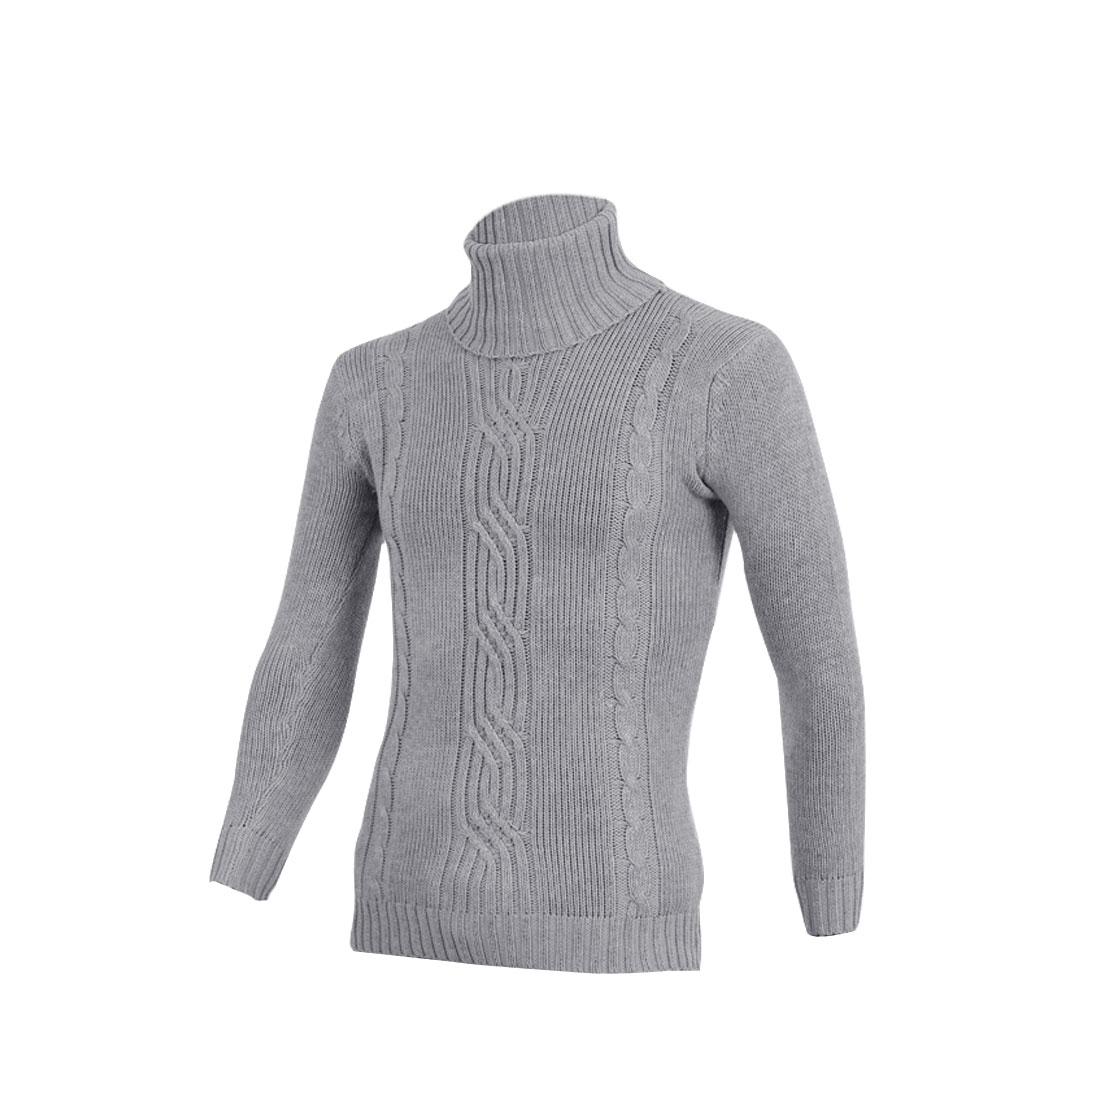 Men Turtle Neck Solid Color Style Long Sleeve Knitwear Sweater S Light Grey